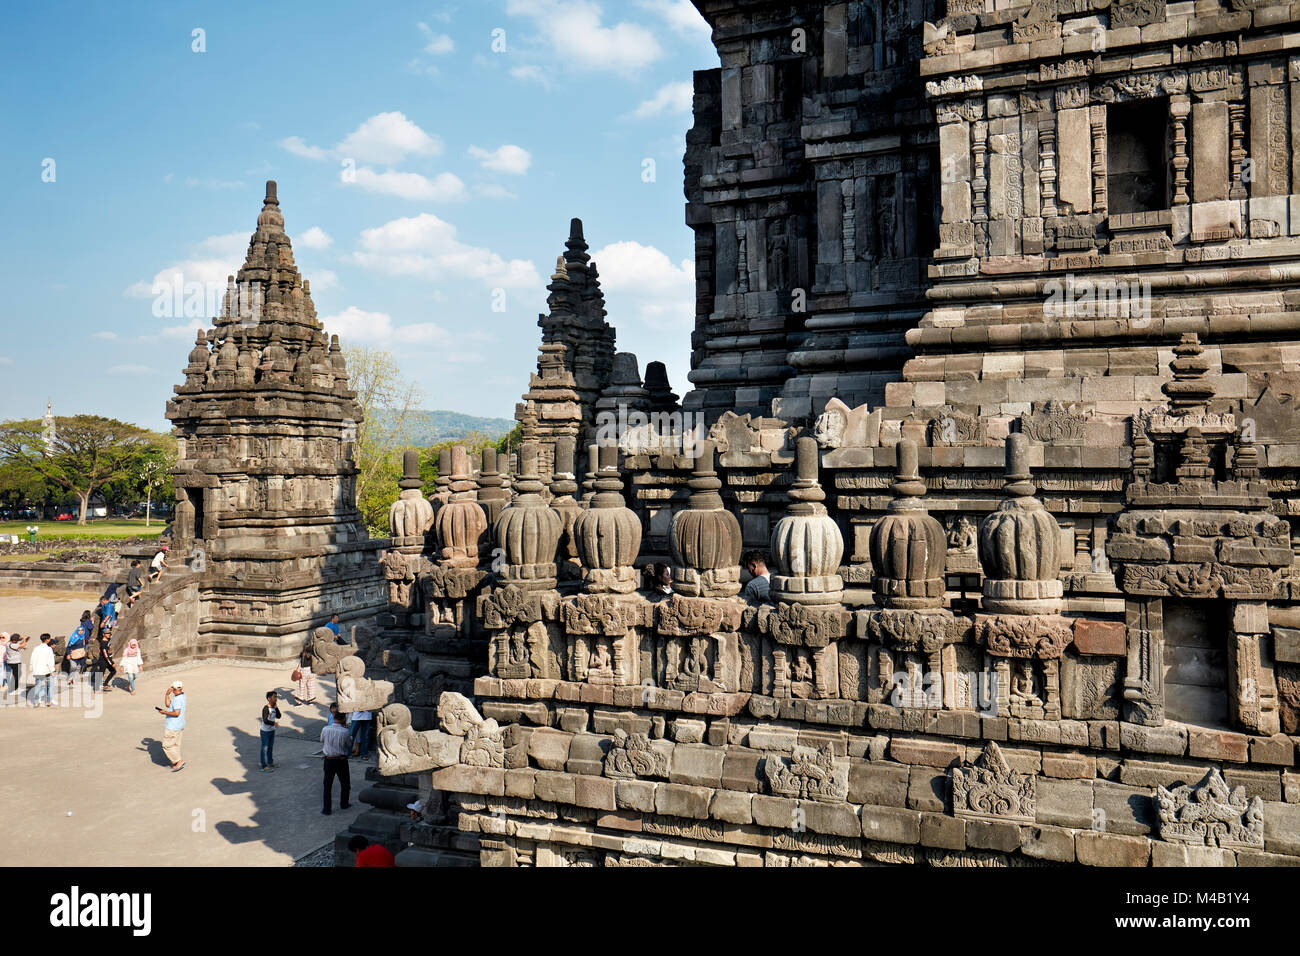 Elaborate stone carving on the temple wall. Prambanan Hindu Temple Compound, Special Region of Yogyakarta, Java, - Stock Image